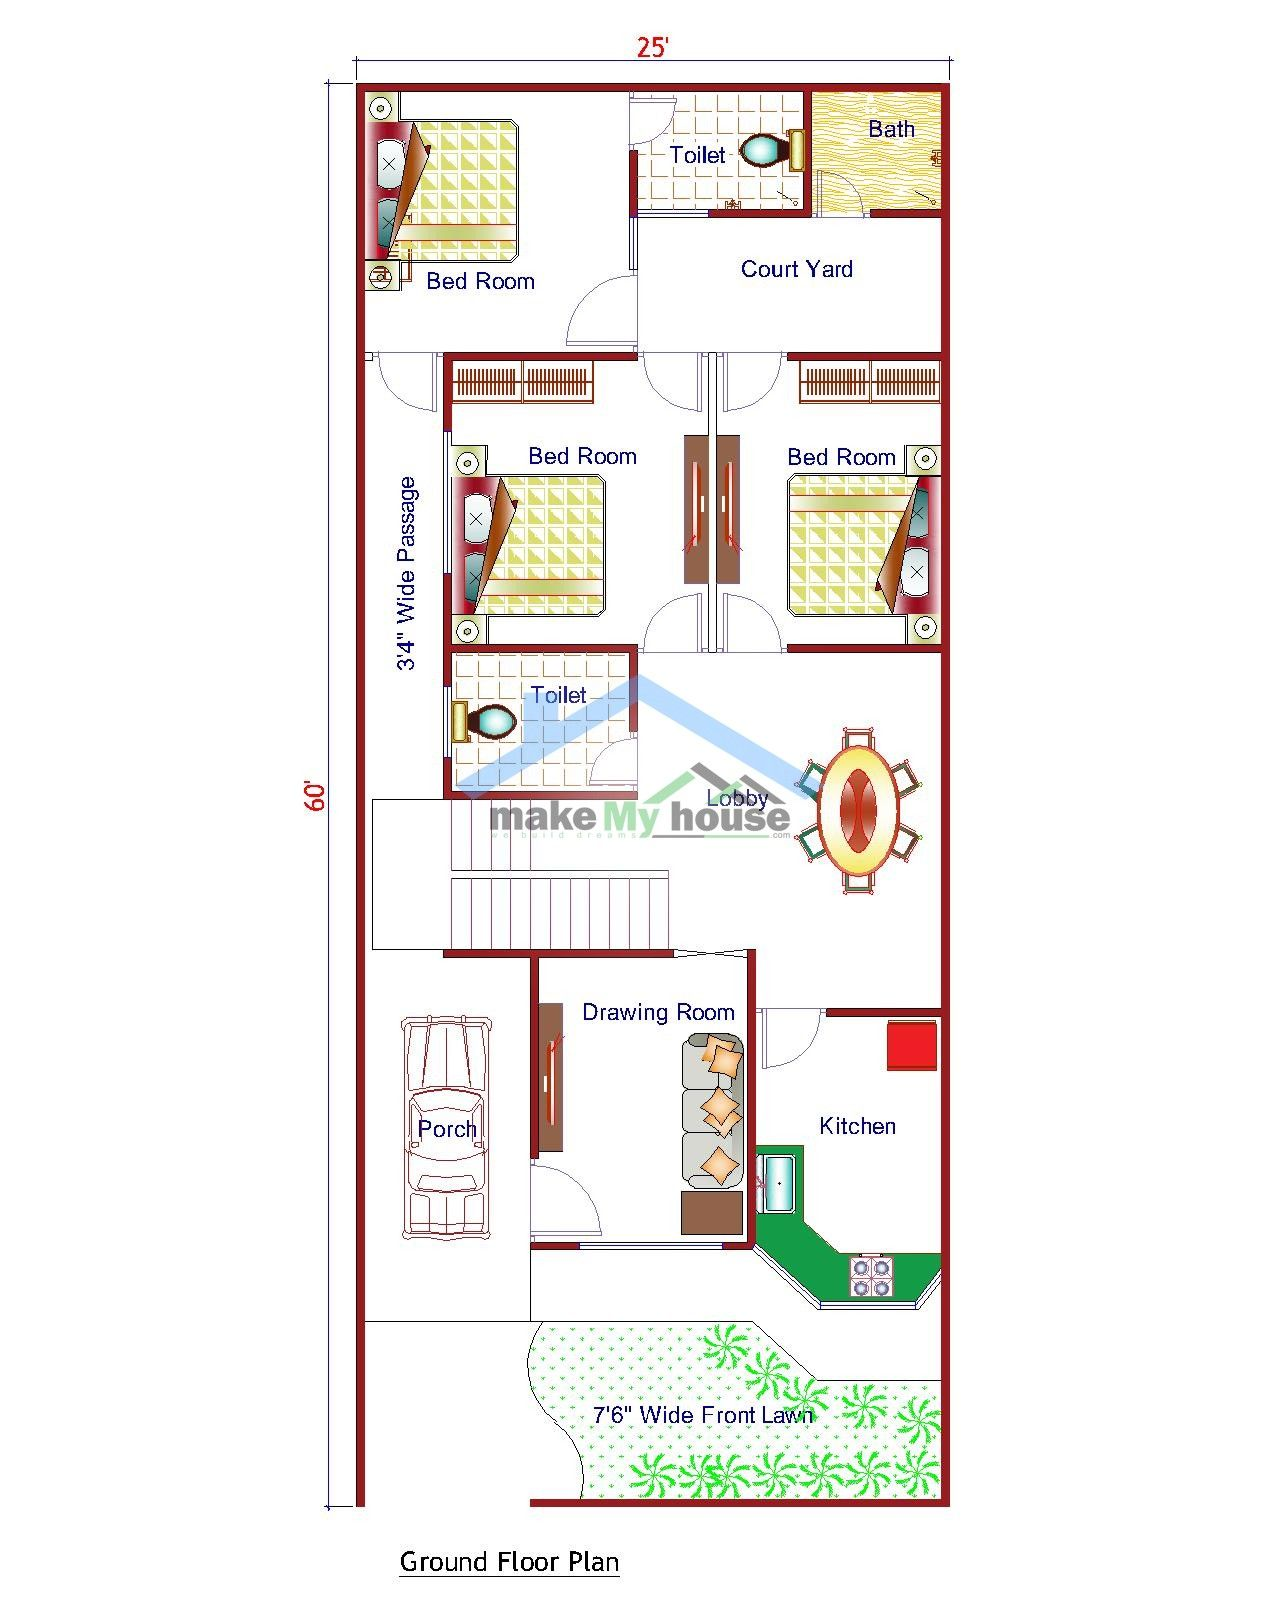 Two Storey House 25 Ft X 60 Ft Good Things Come In Small Packages This Compact Yet Charming D Duplex Floor Plans Bungalow Floor Plans Four Bedroom House Plans